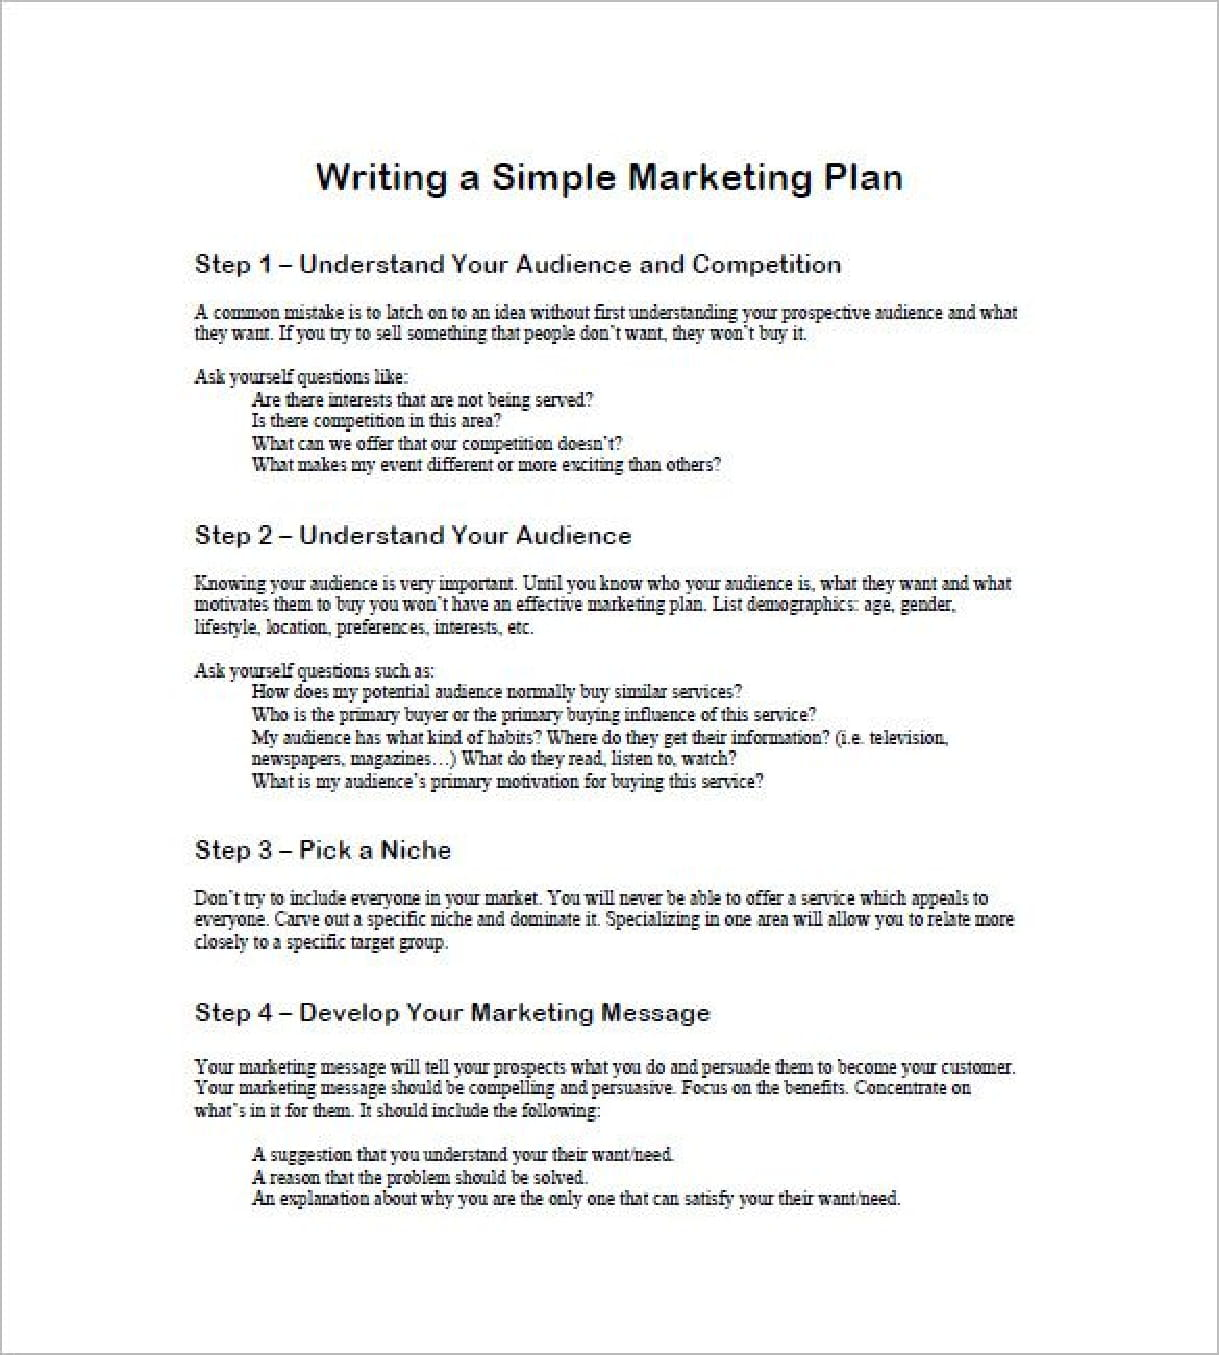 writing a simple marketing plan example